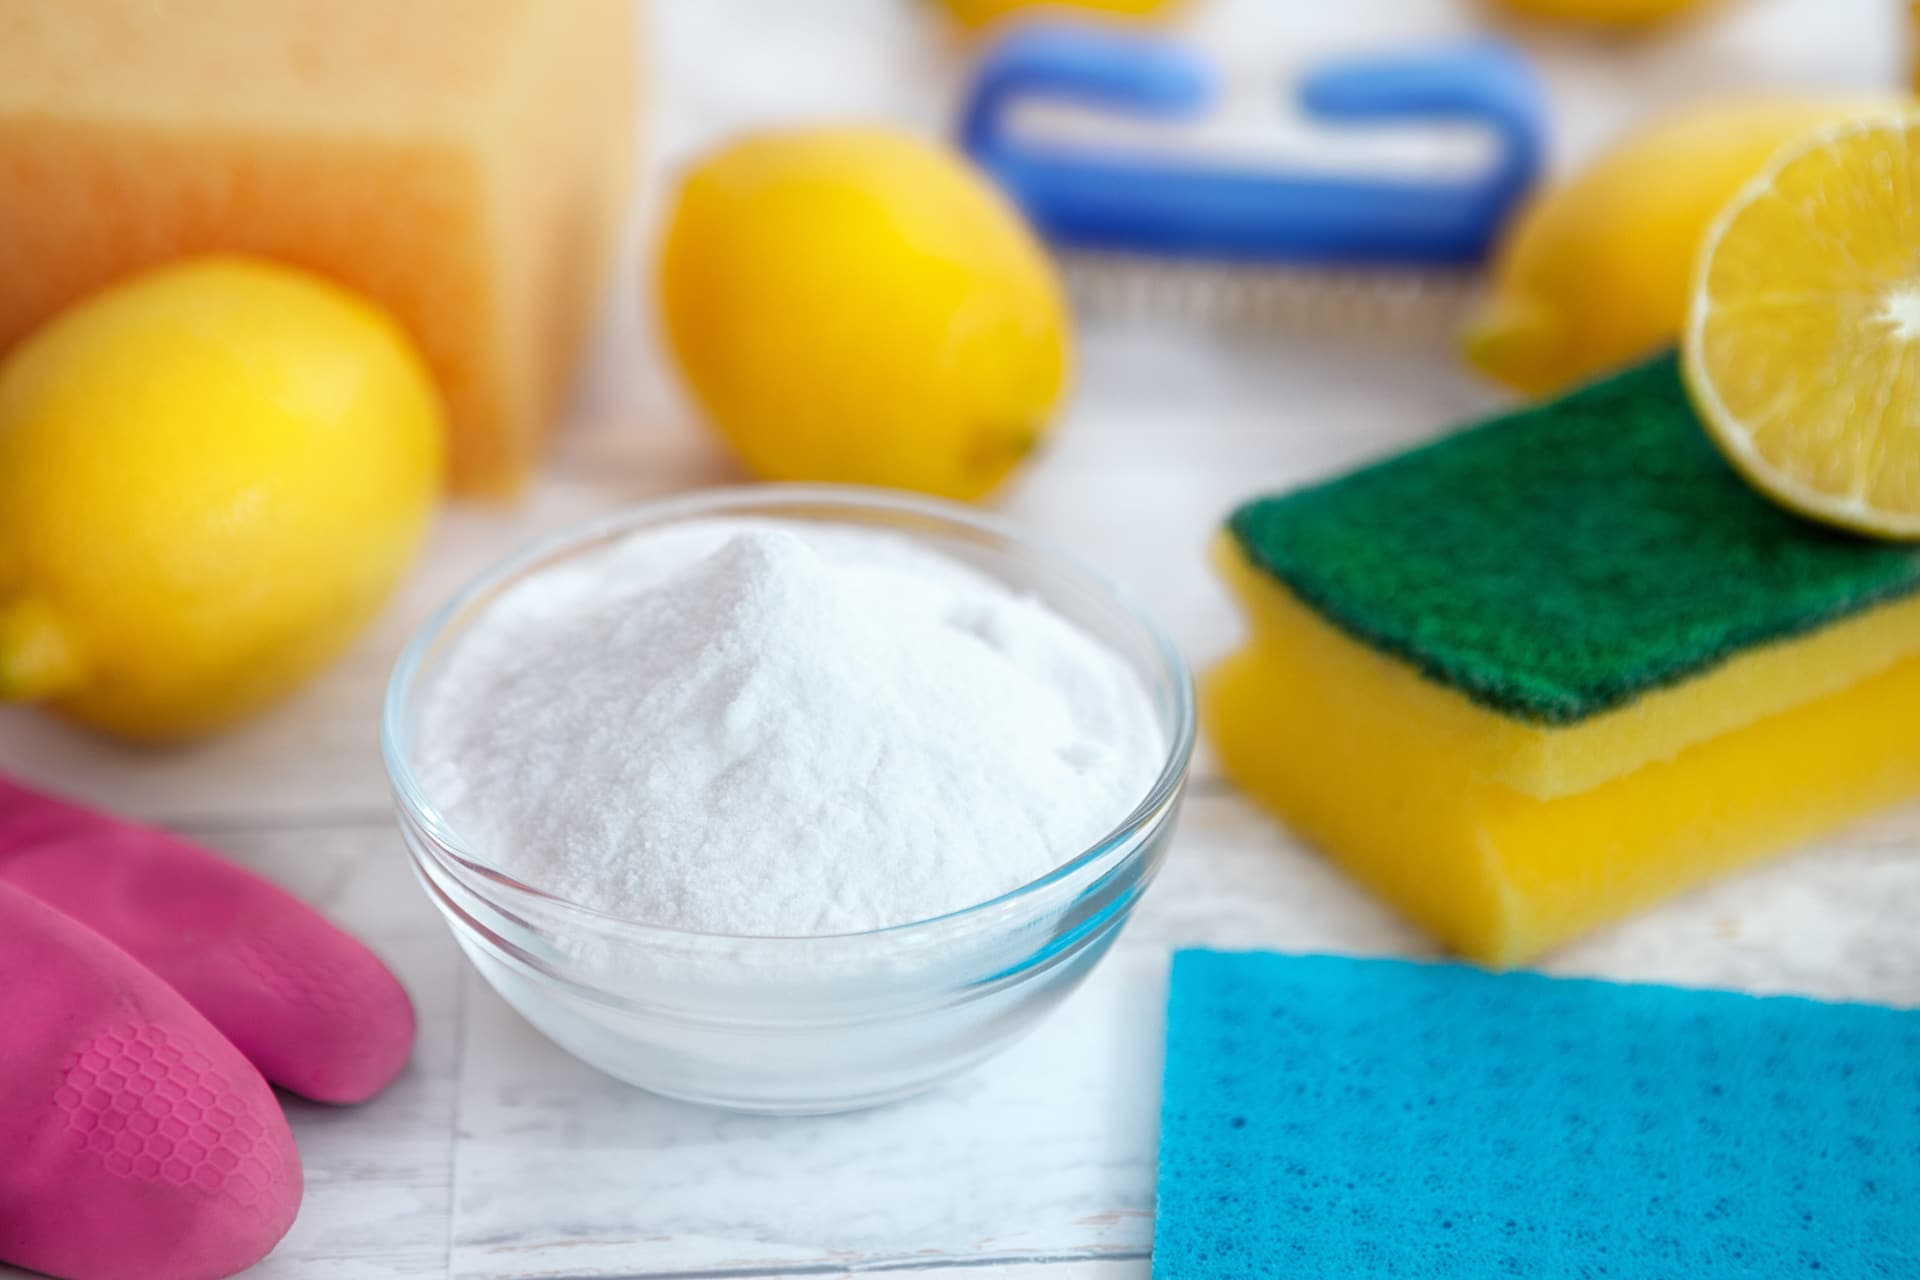 Baking soda, lemon and cleaning accessories